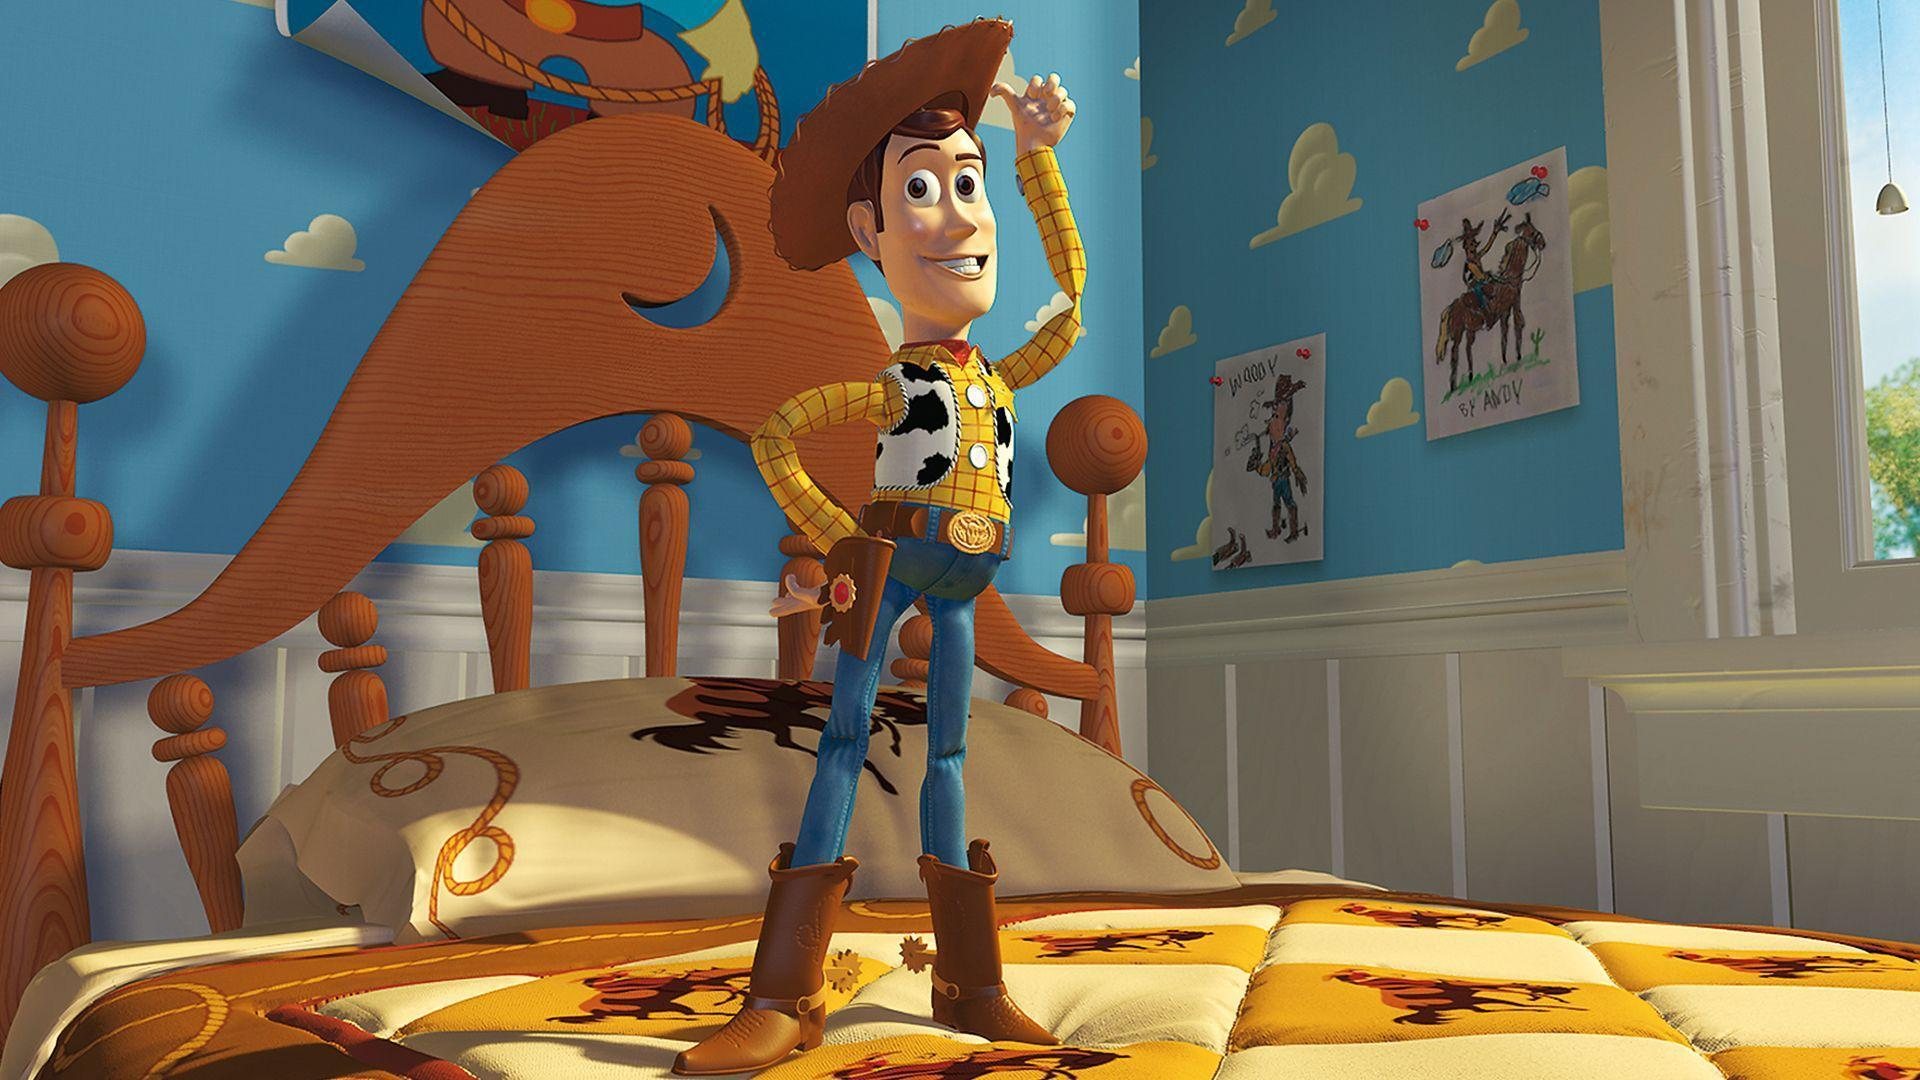 Toy Story Hd Wallpapers Wallpaper Cave